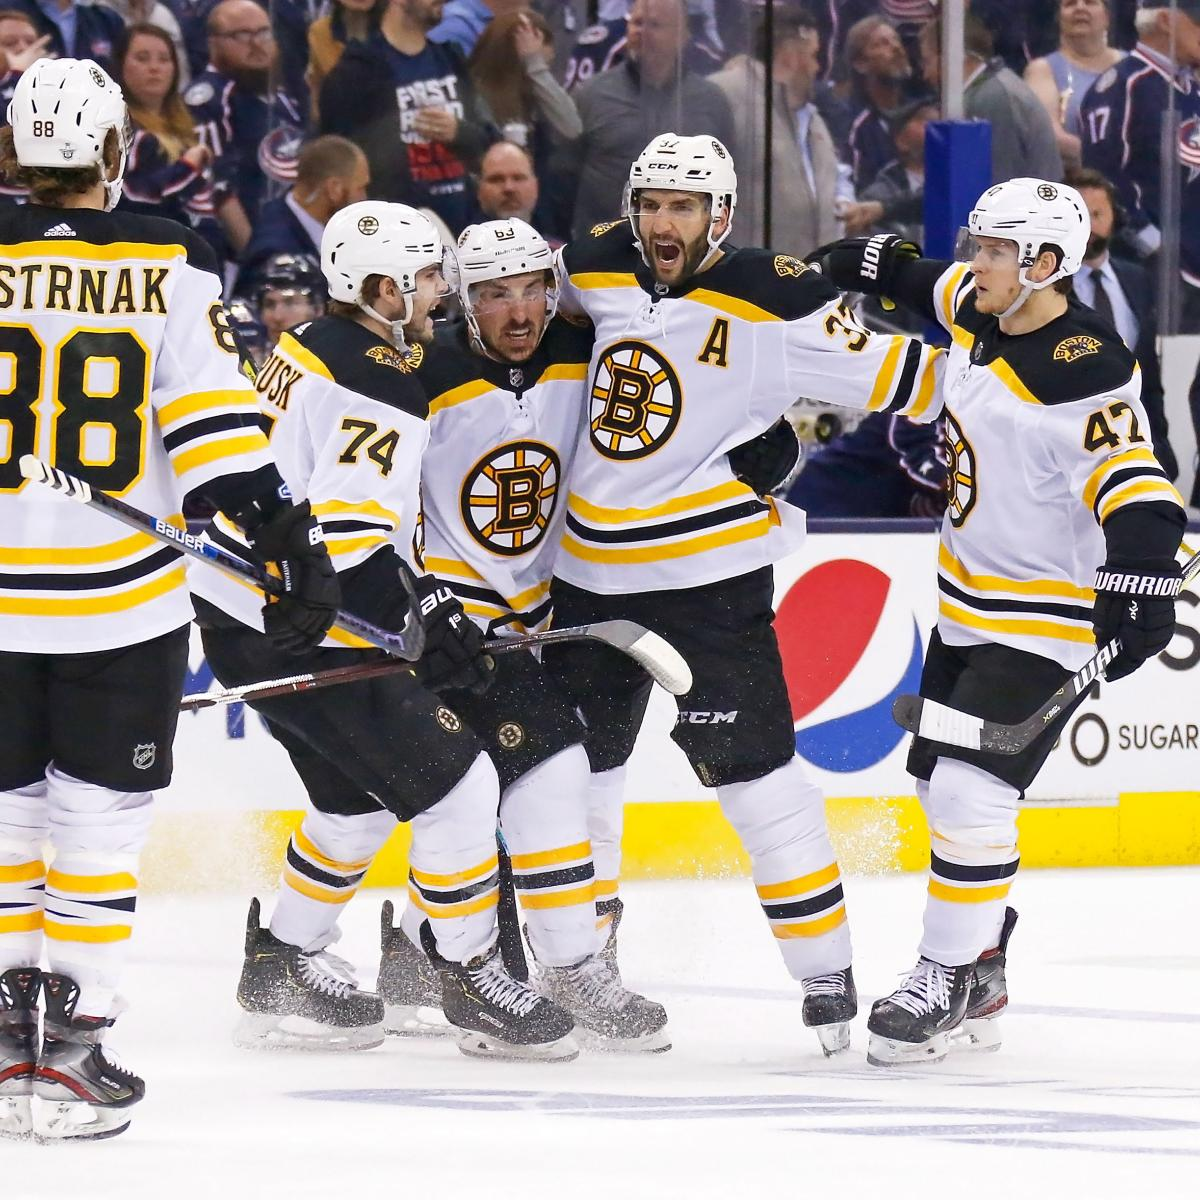 Patrice Bergeron, Bruins Capture Game 4 Win Over Blue